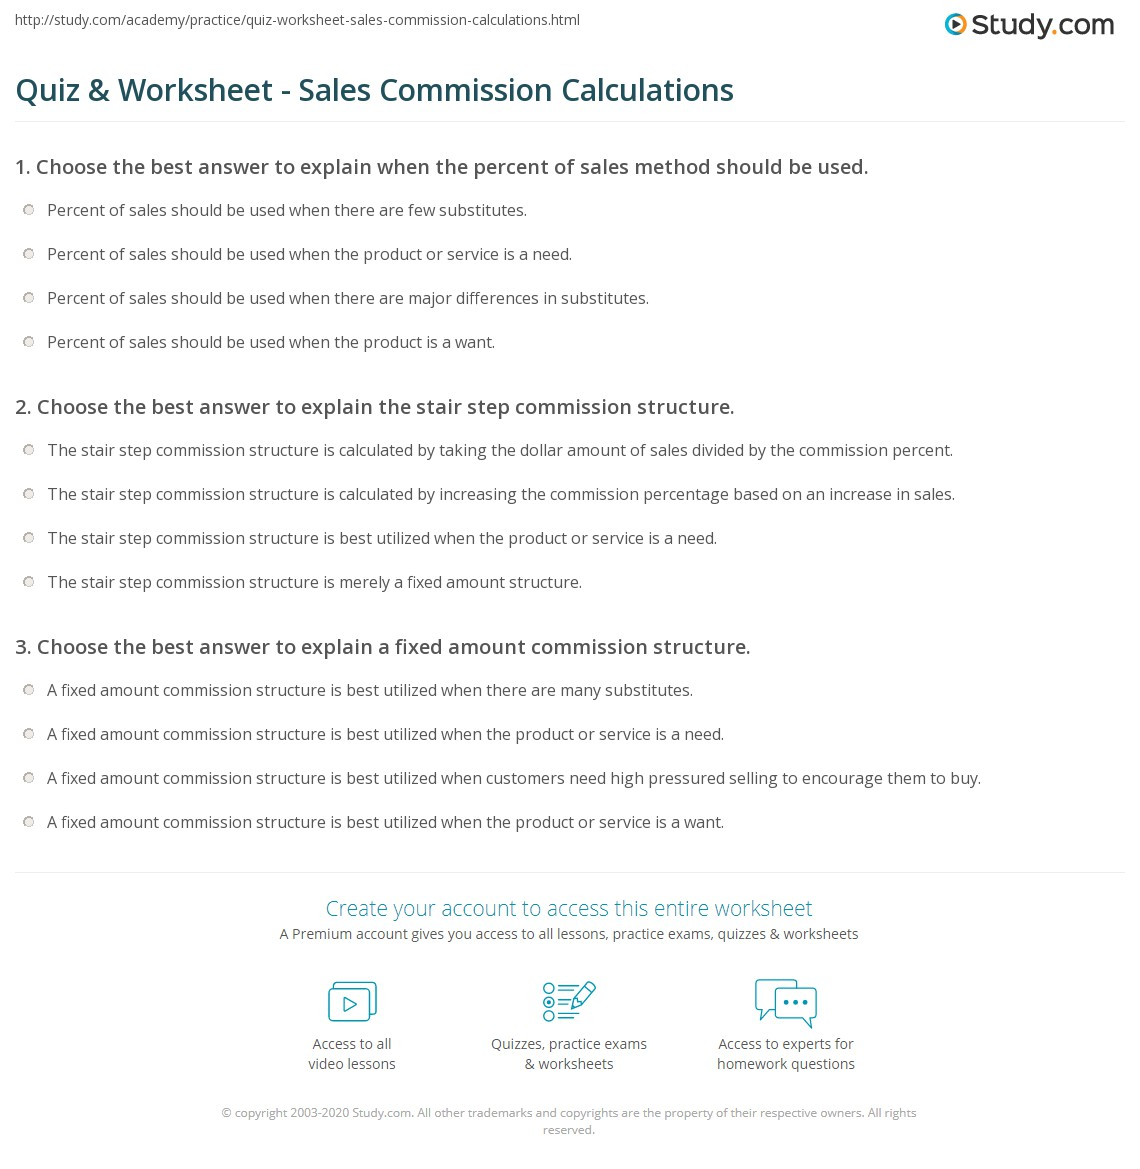 Worksheet Works Calculating Prices Using Discounts Answers